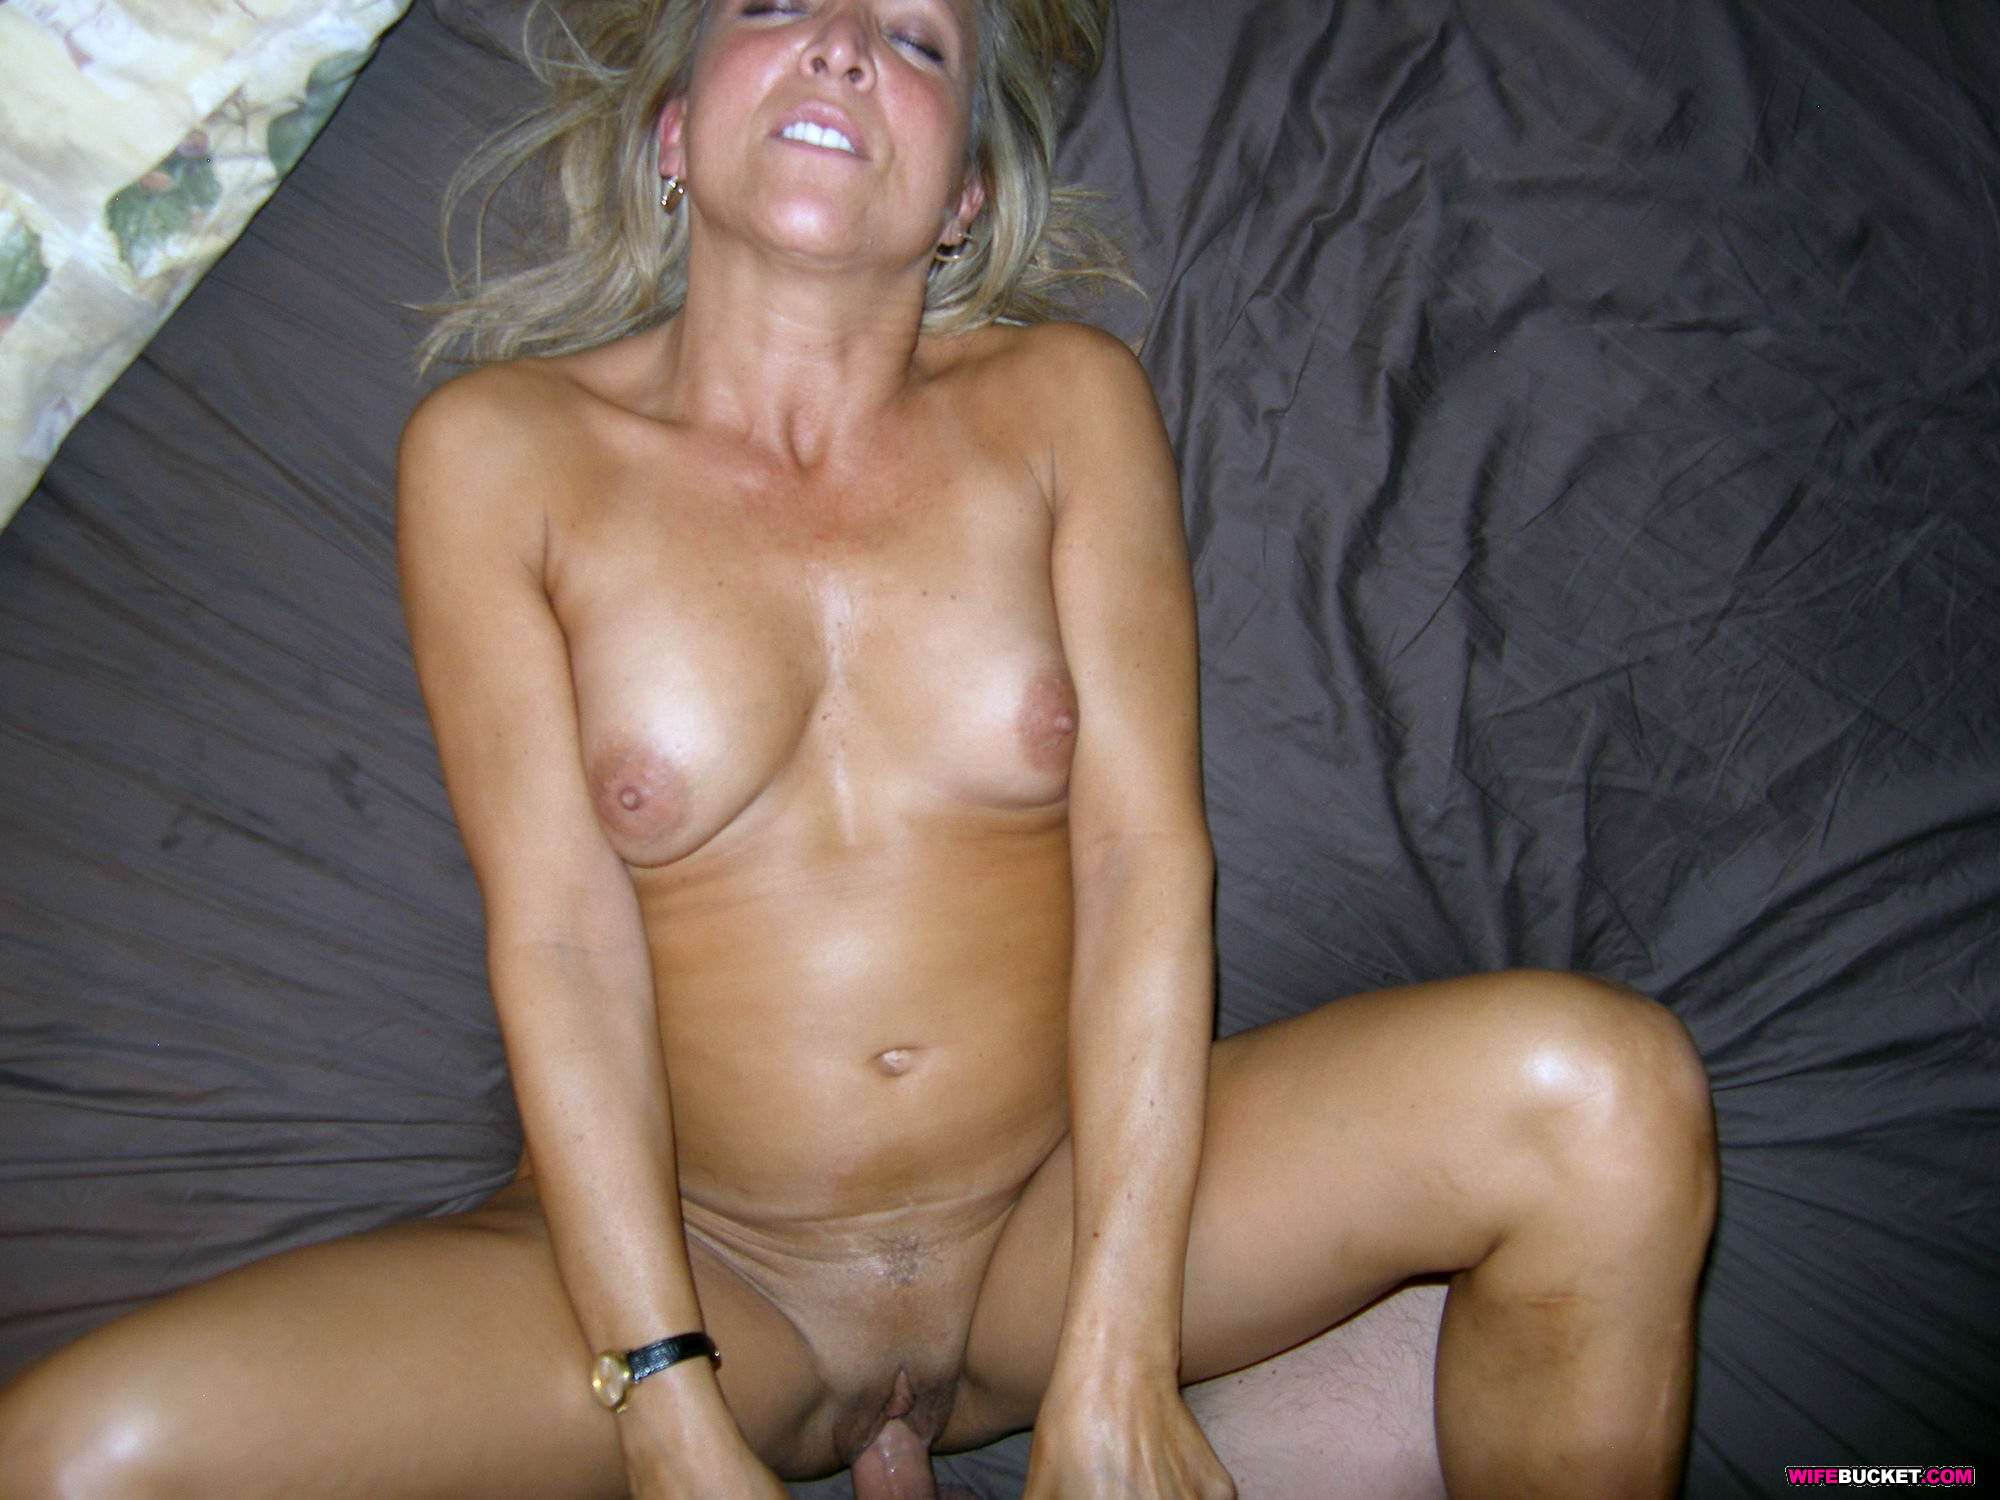 Open marriage threesome with two gorgeous milfs